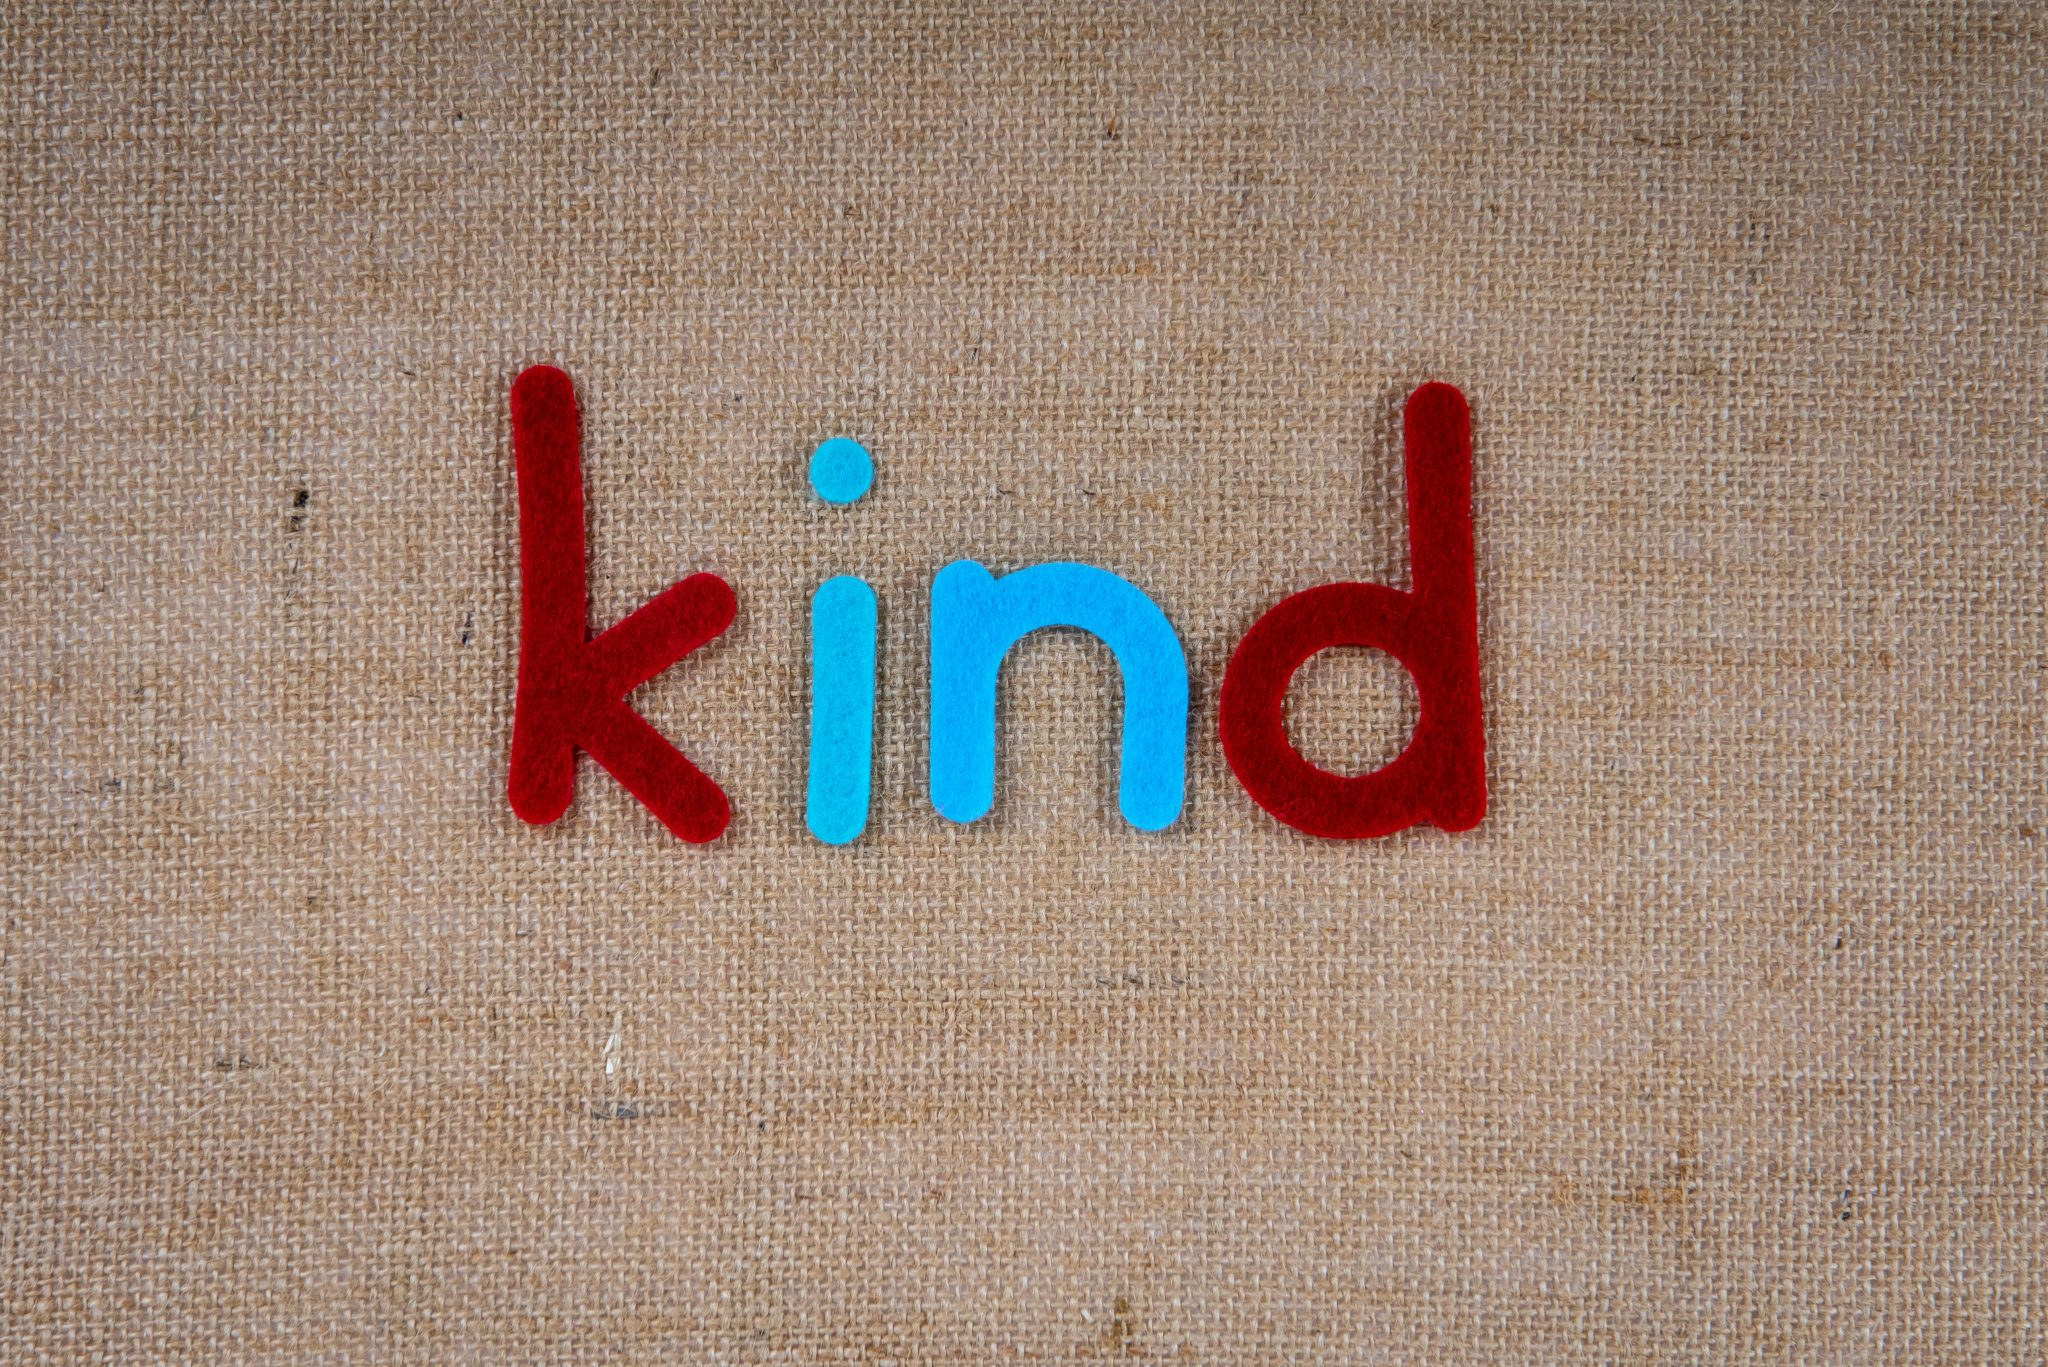 How to cultivate kindness in a world that sorely needs it